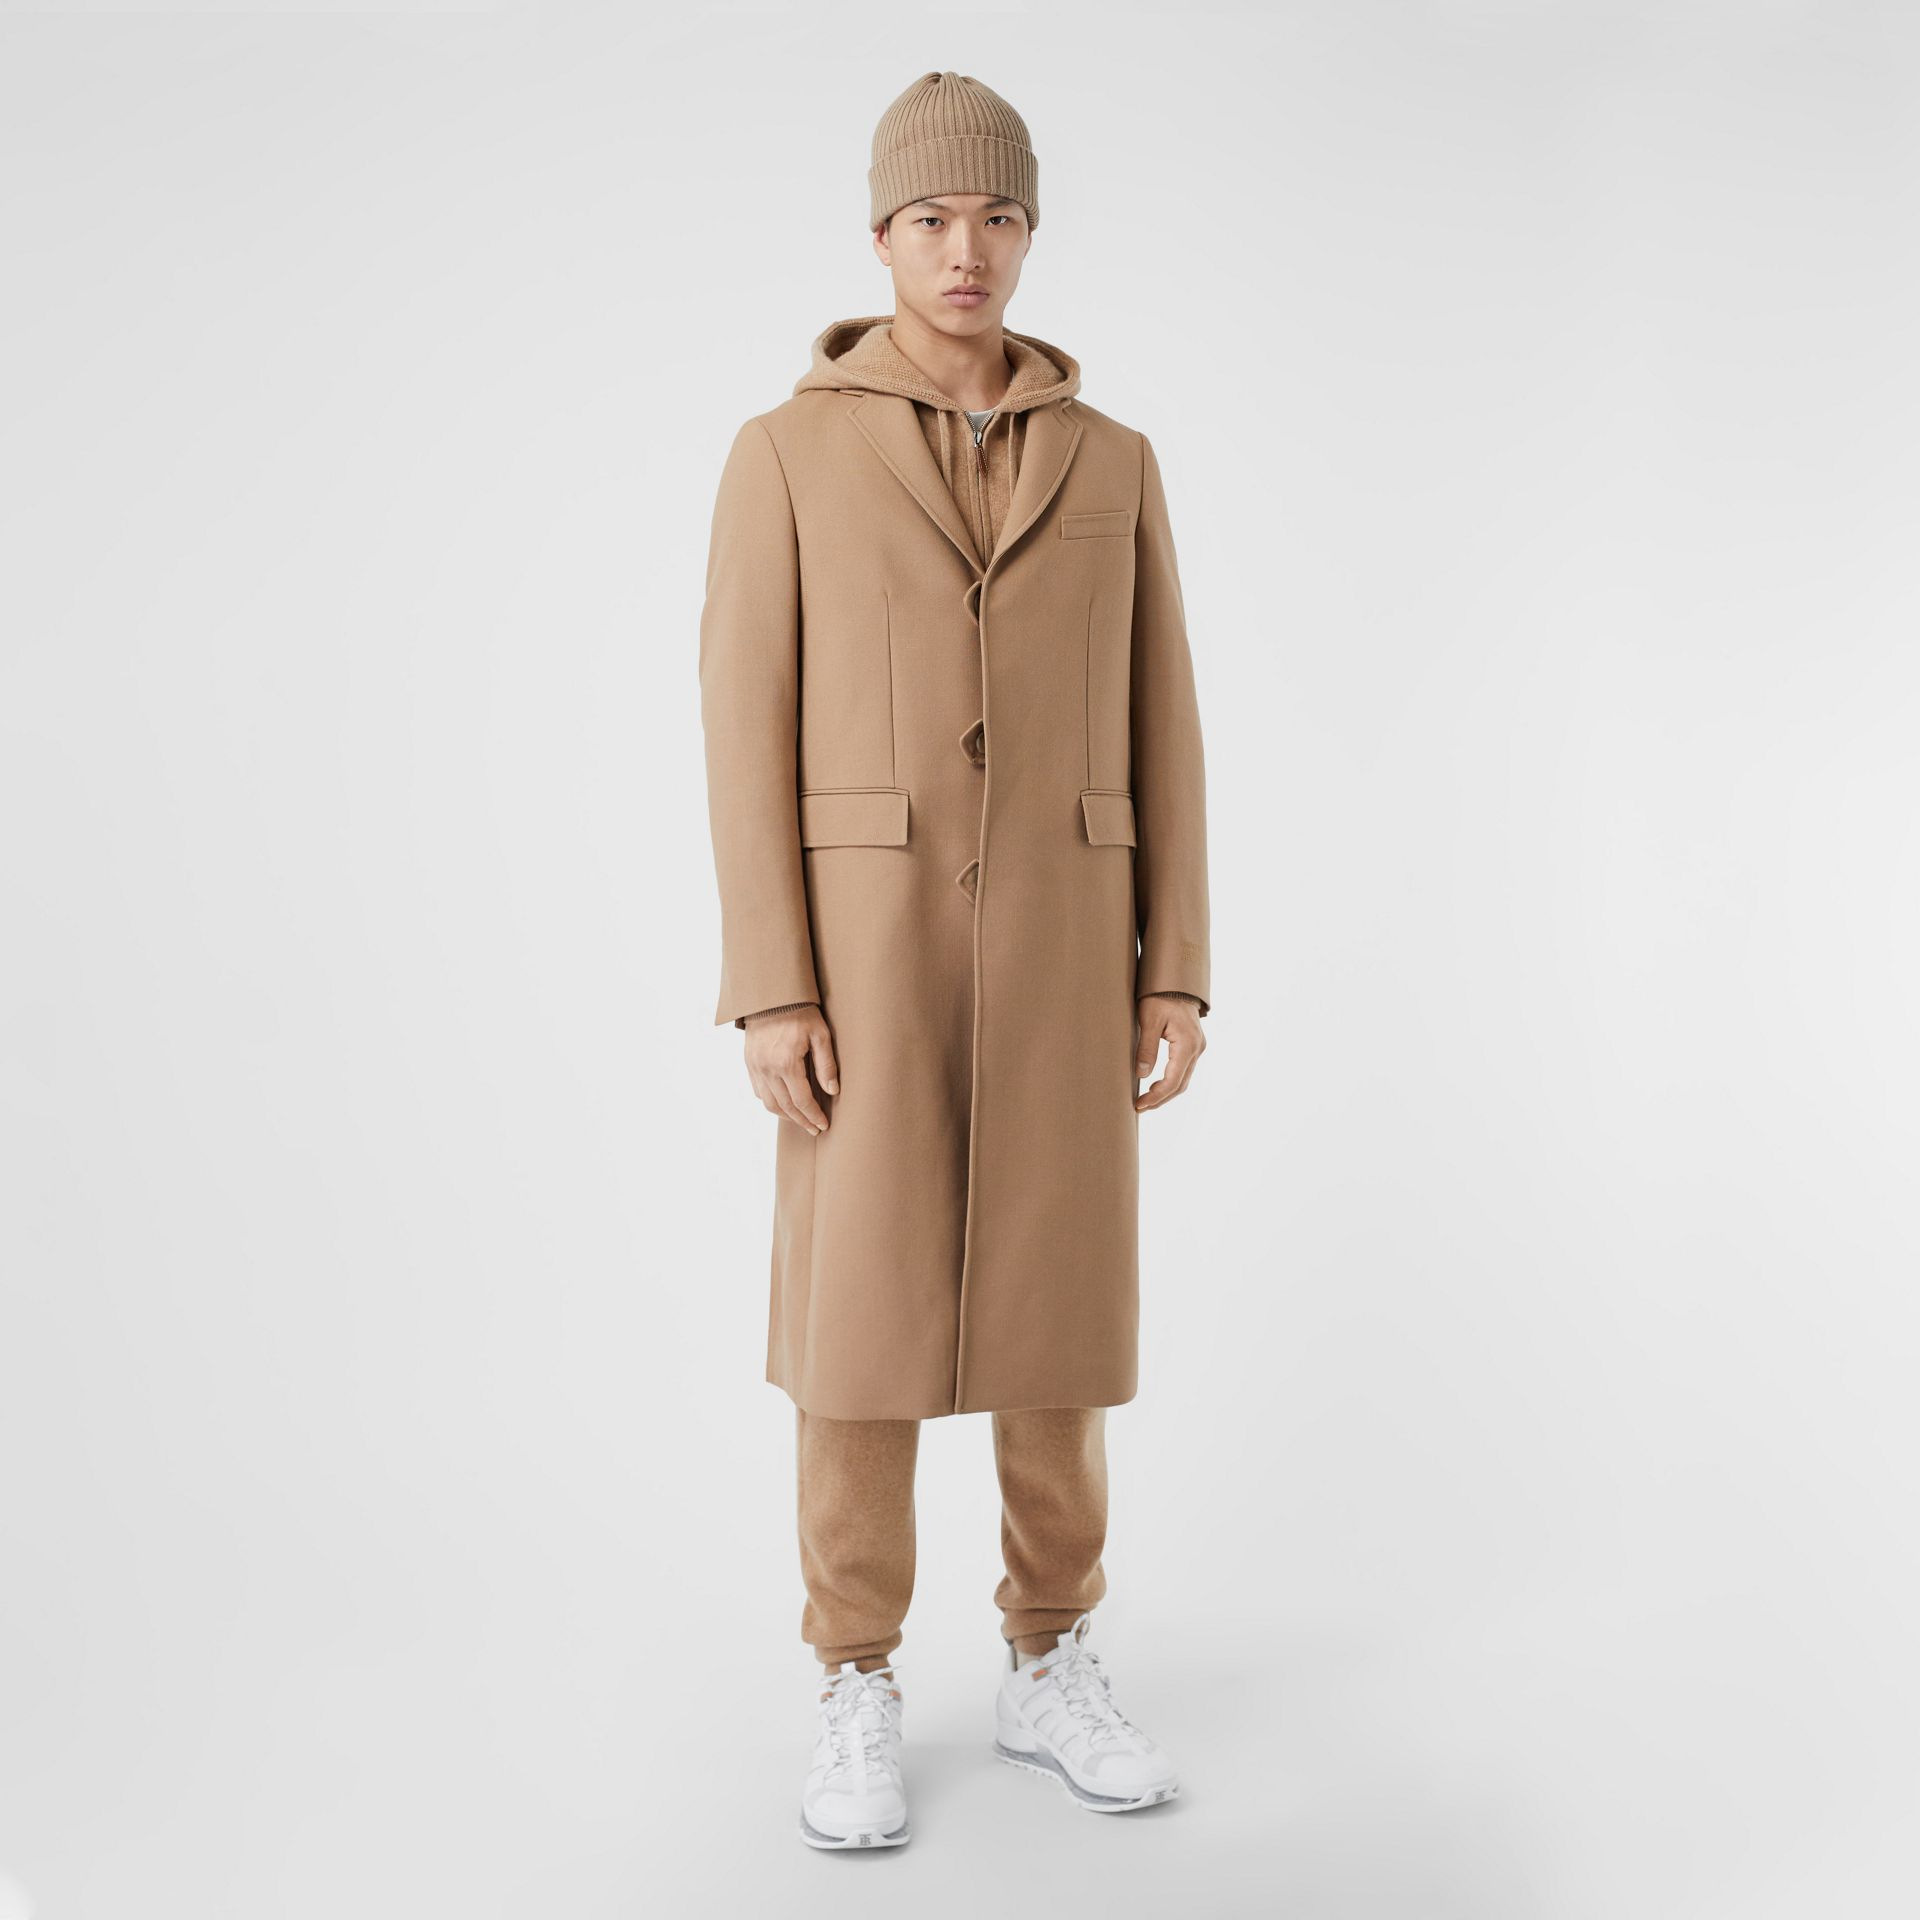 Logo Embroidered Wool Coat in Camel - Men | Burberry - gallery image 4